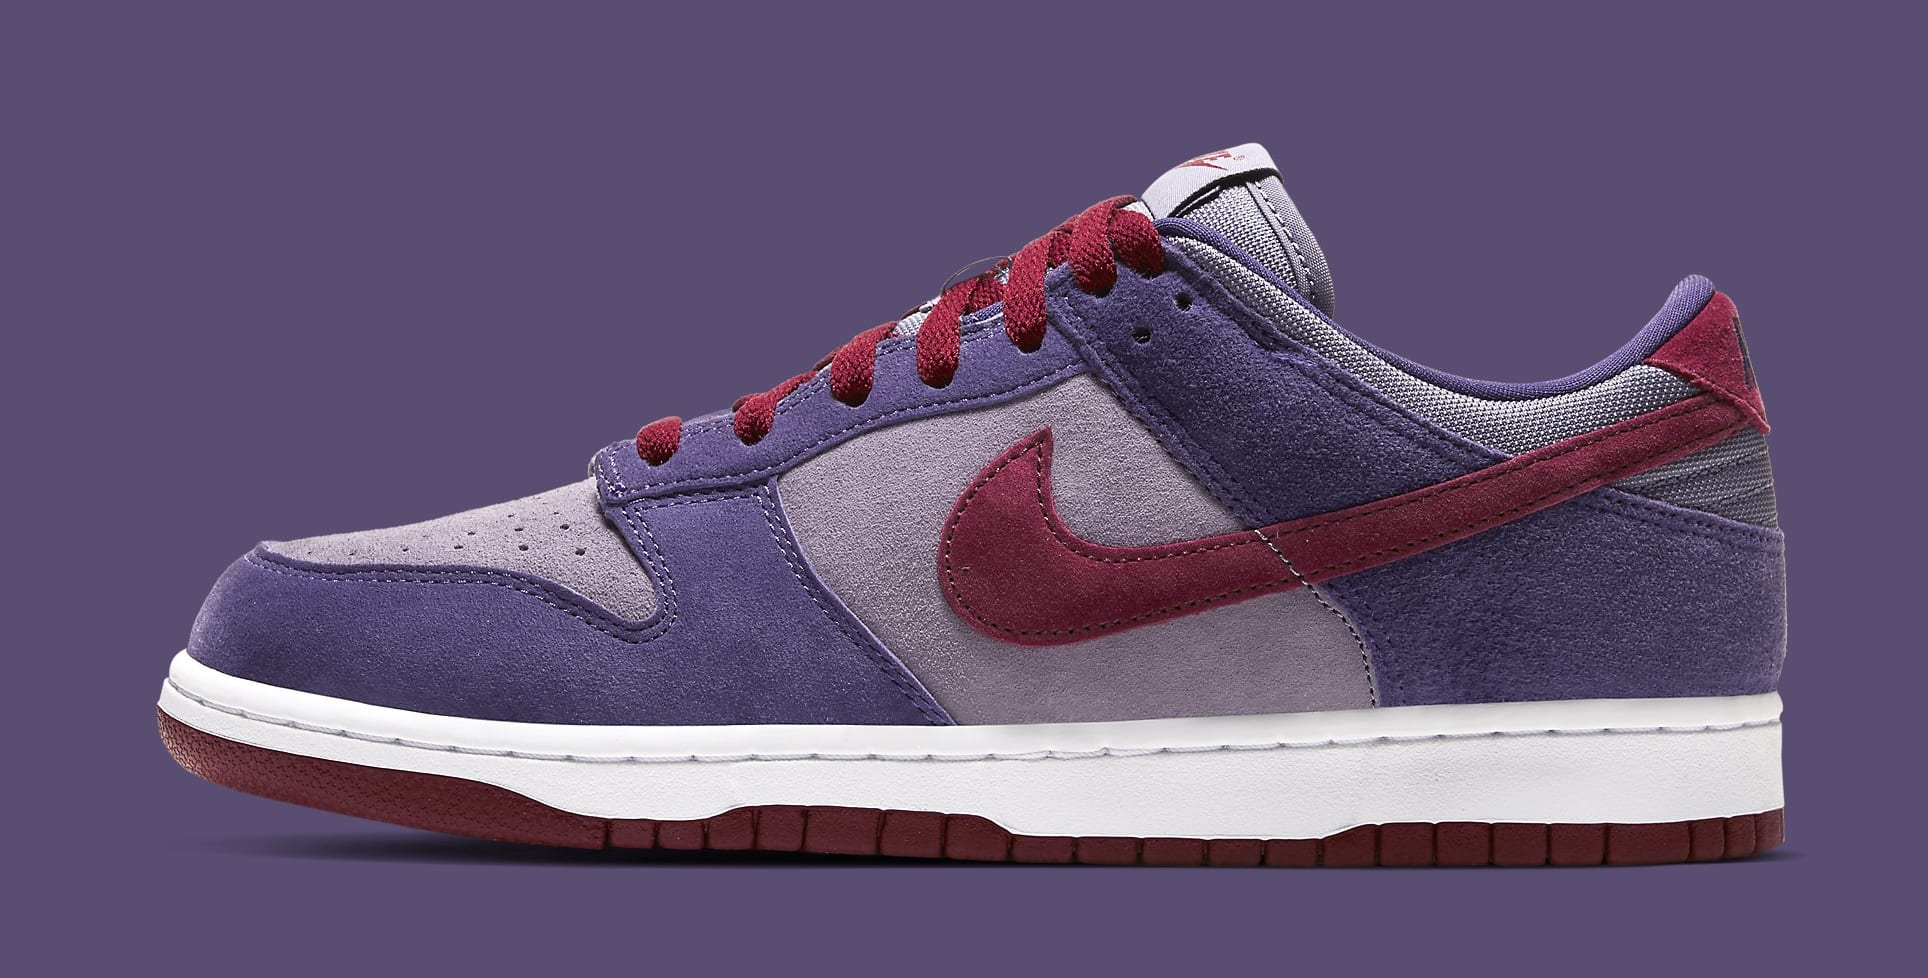 nike-dunk-low-plum-2020-cu1726-500-lateral